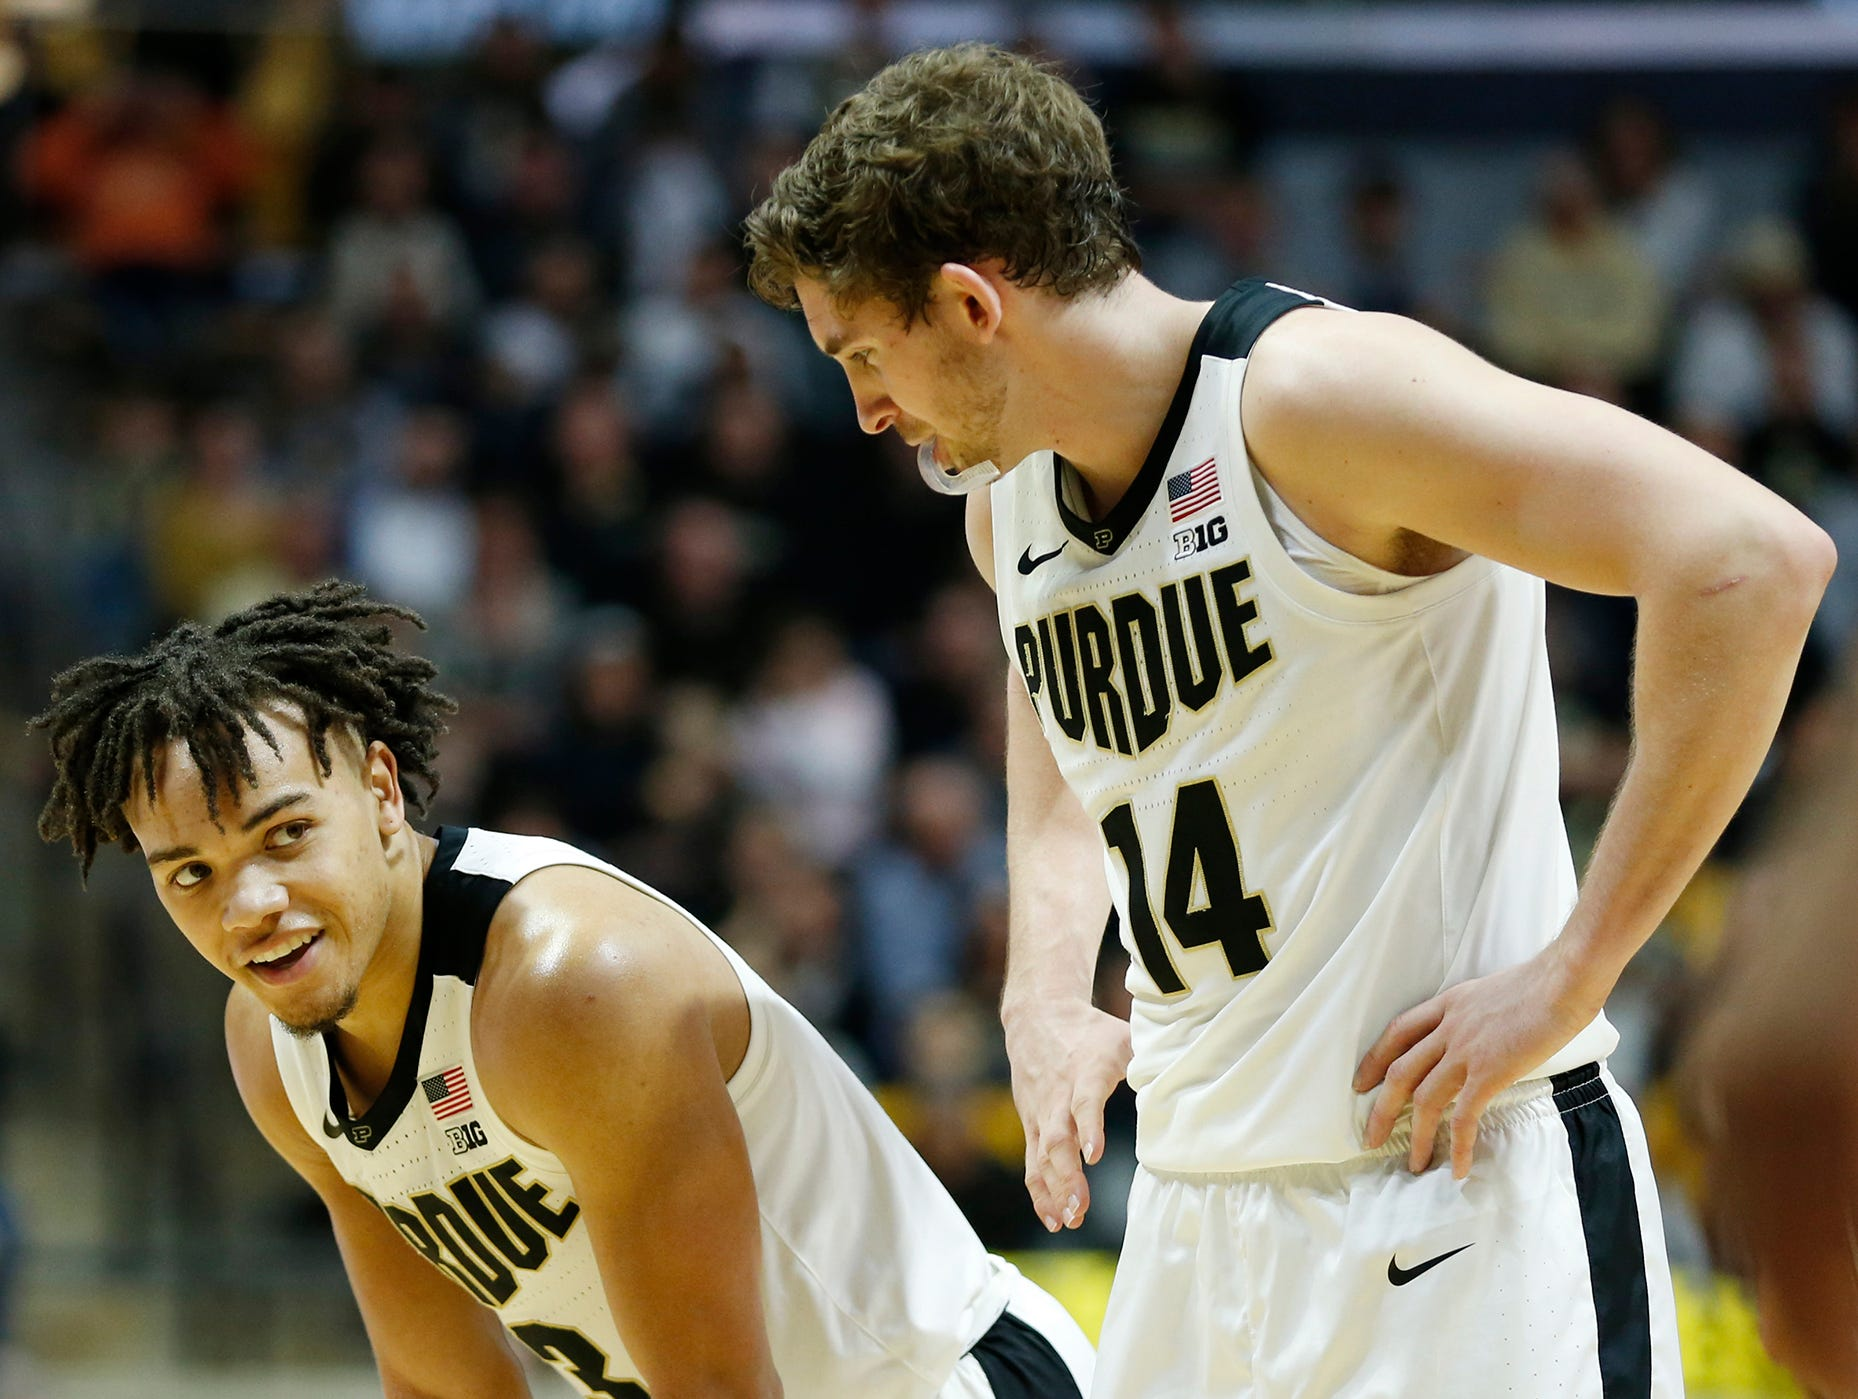 Carsen Edwards of Purdue has a laugh with teammate Ryan Cline before stepping up to the free throw line in the second half against Ohio Thursday, December 20, 2018, at Mackey Arena. Purdue defeated Ohio 95-67.